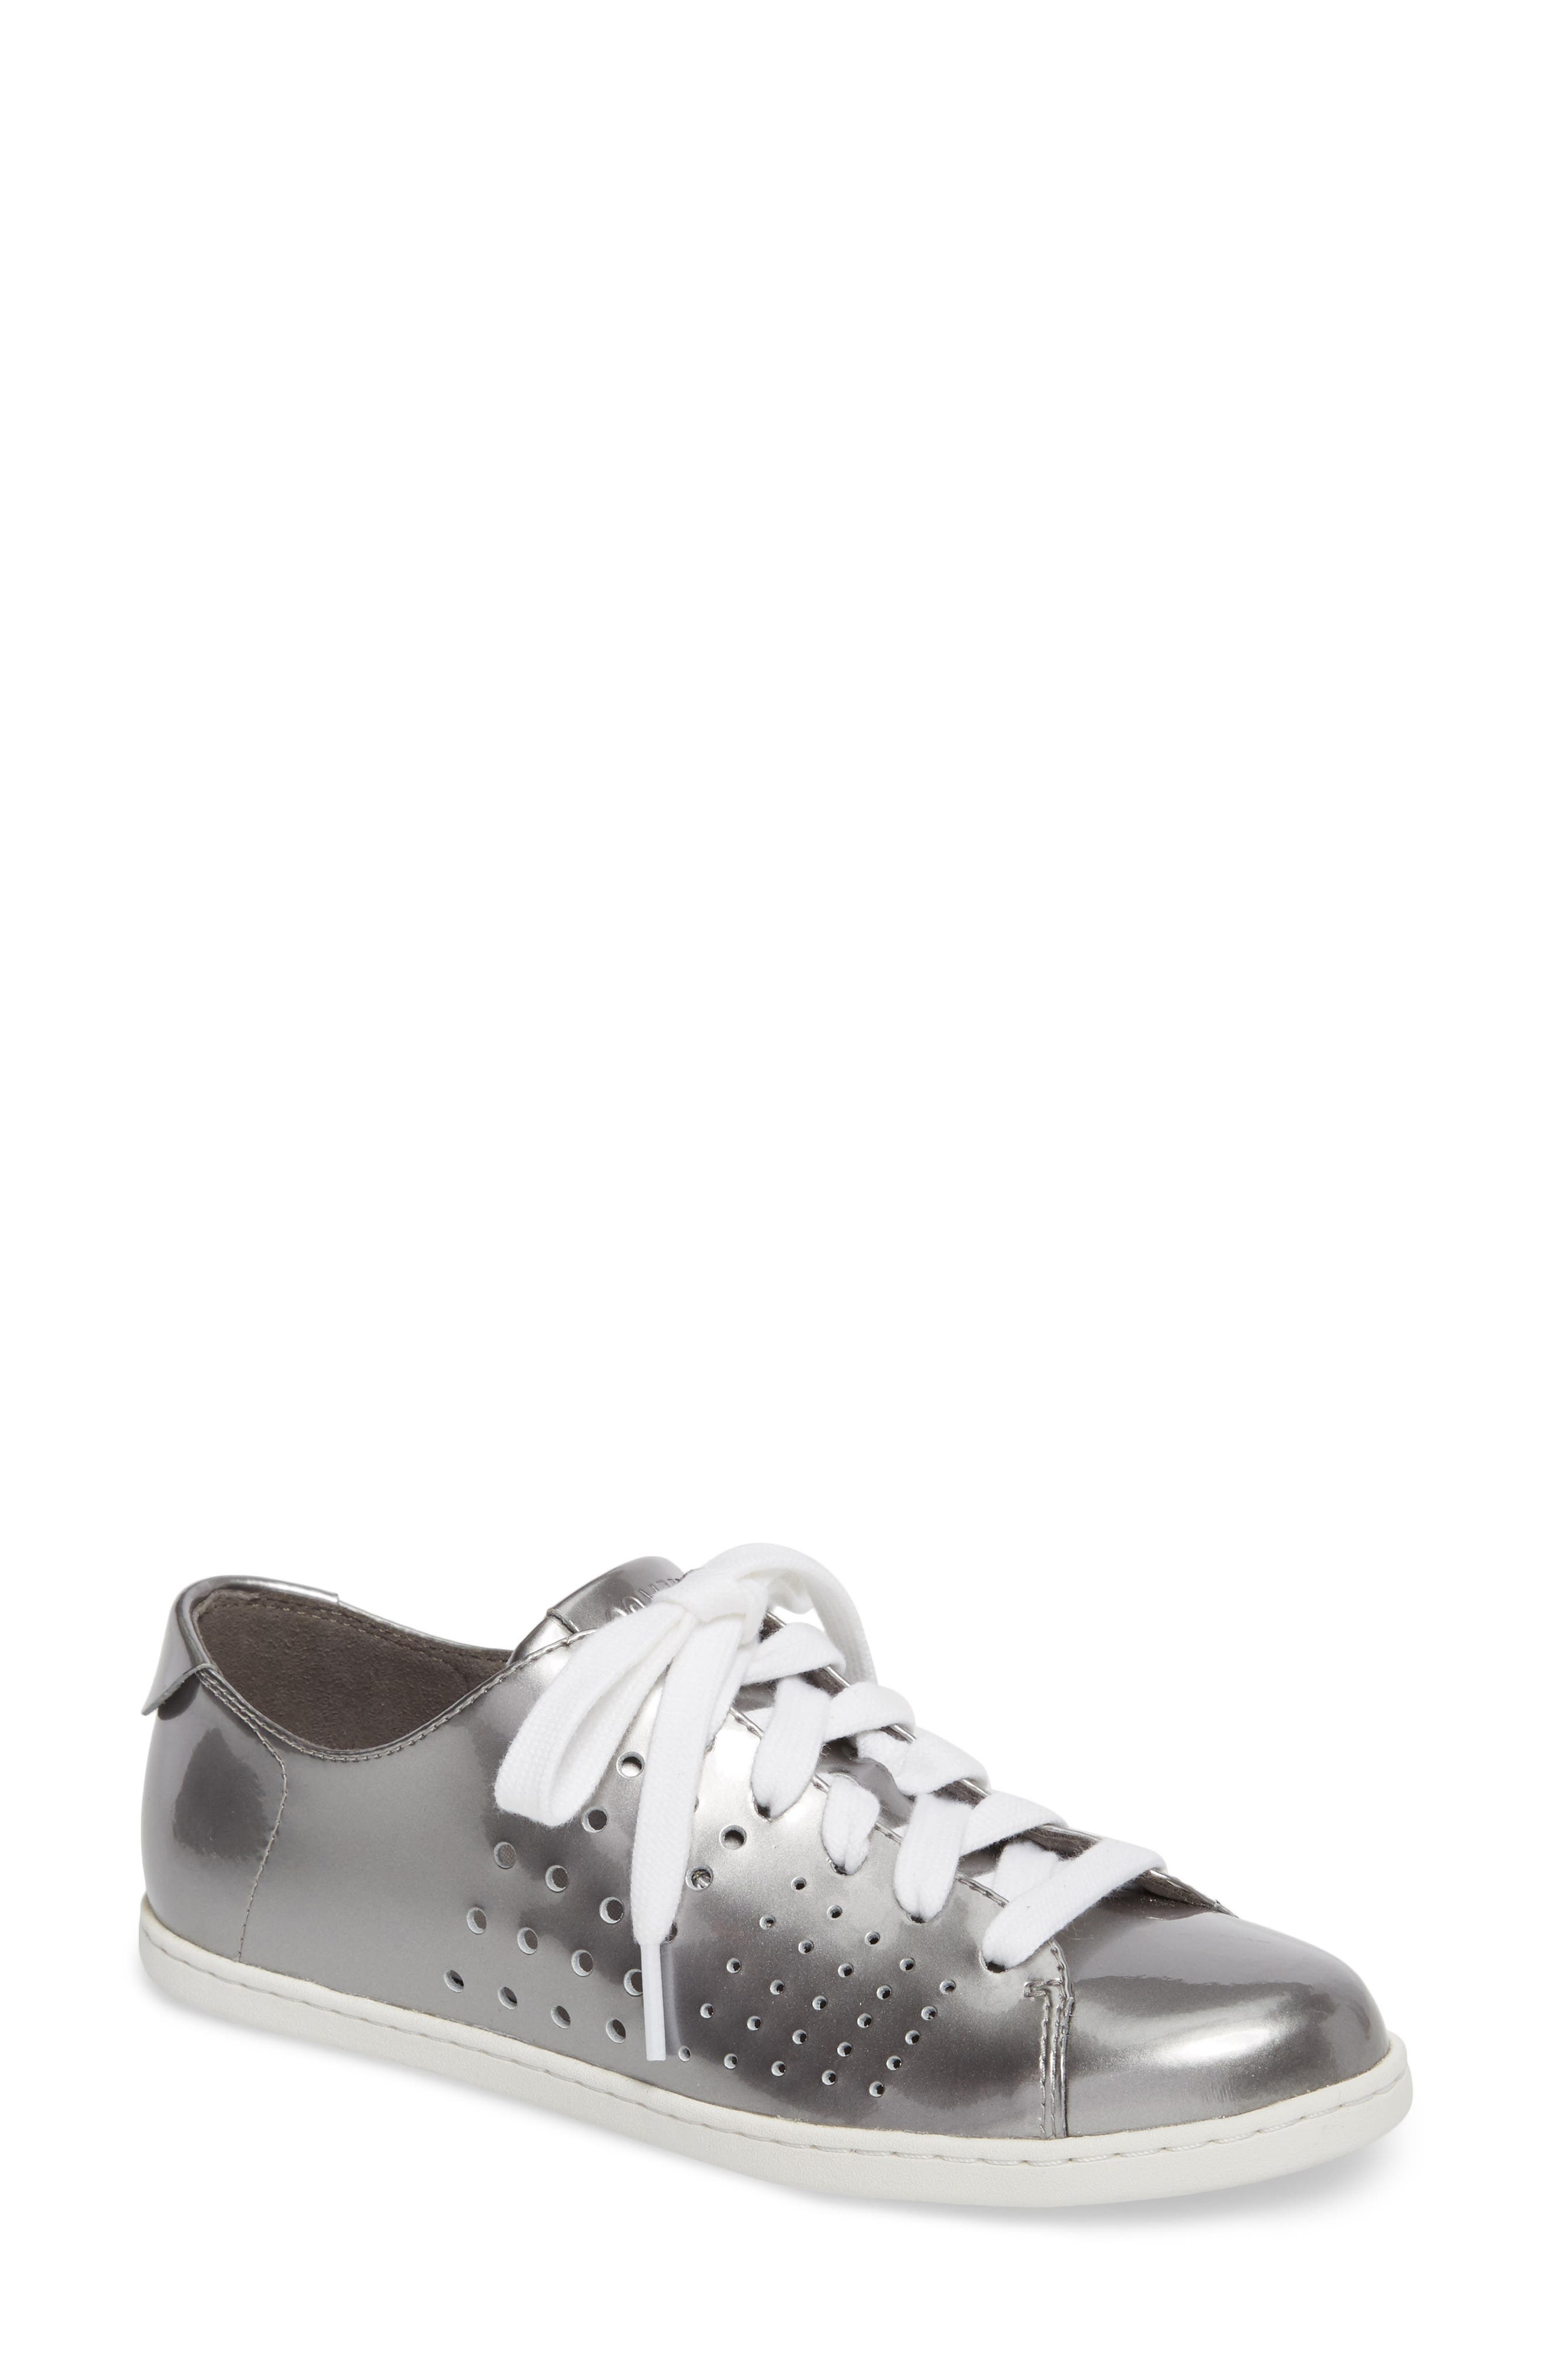 Twins Perforated Low Top Sneaker,                         Main,                         color, 030